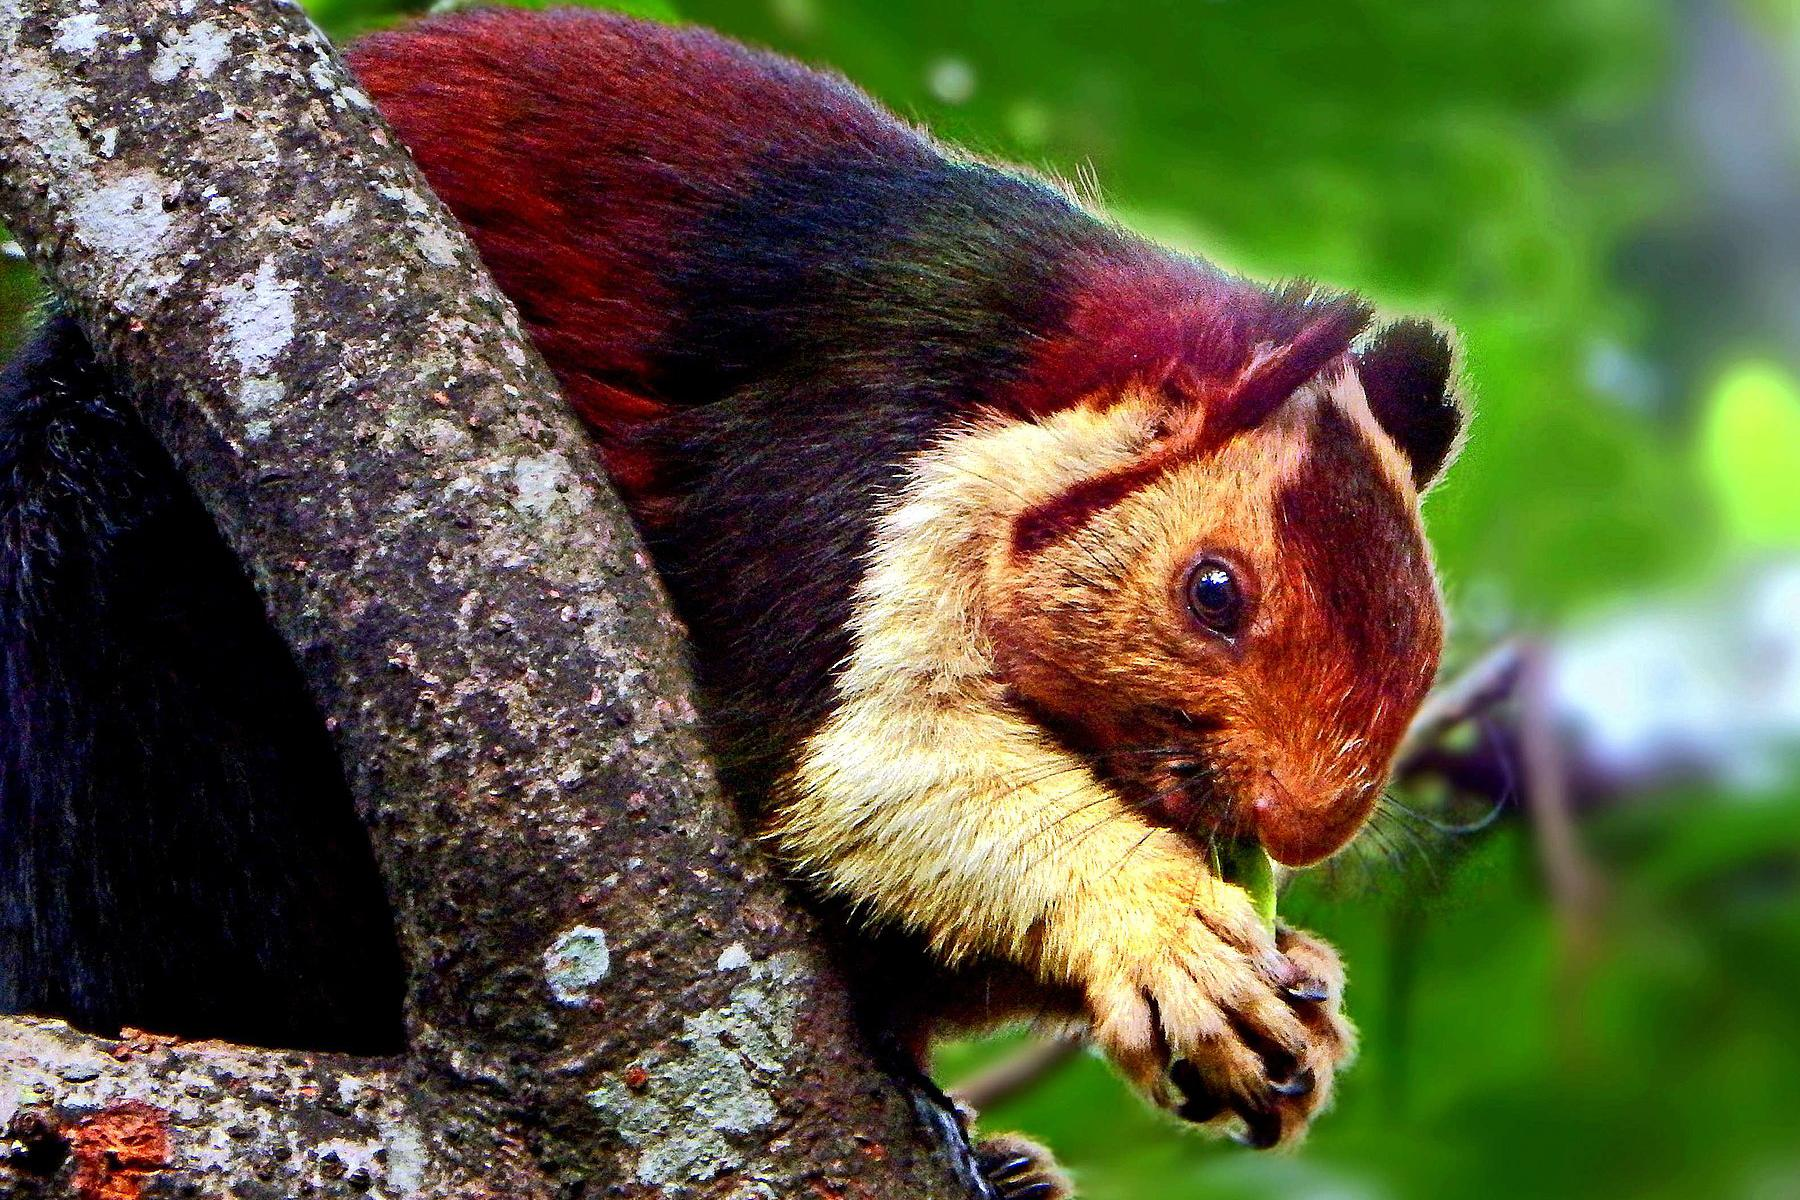 Malabar Giant Squirrel Rison Thumboor Wikimedia Commons